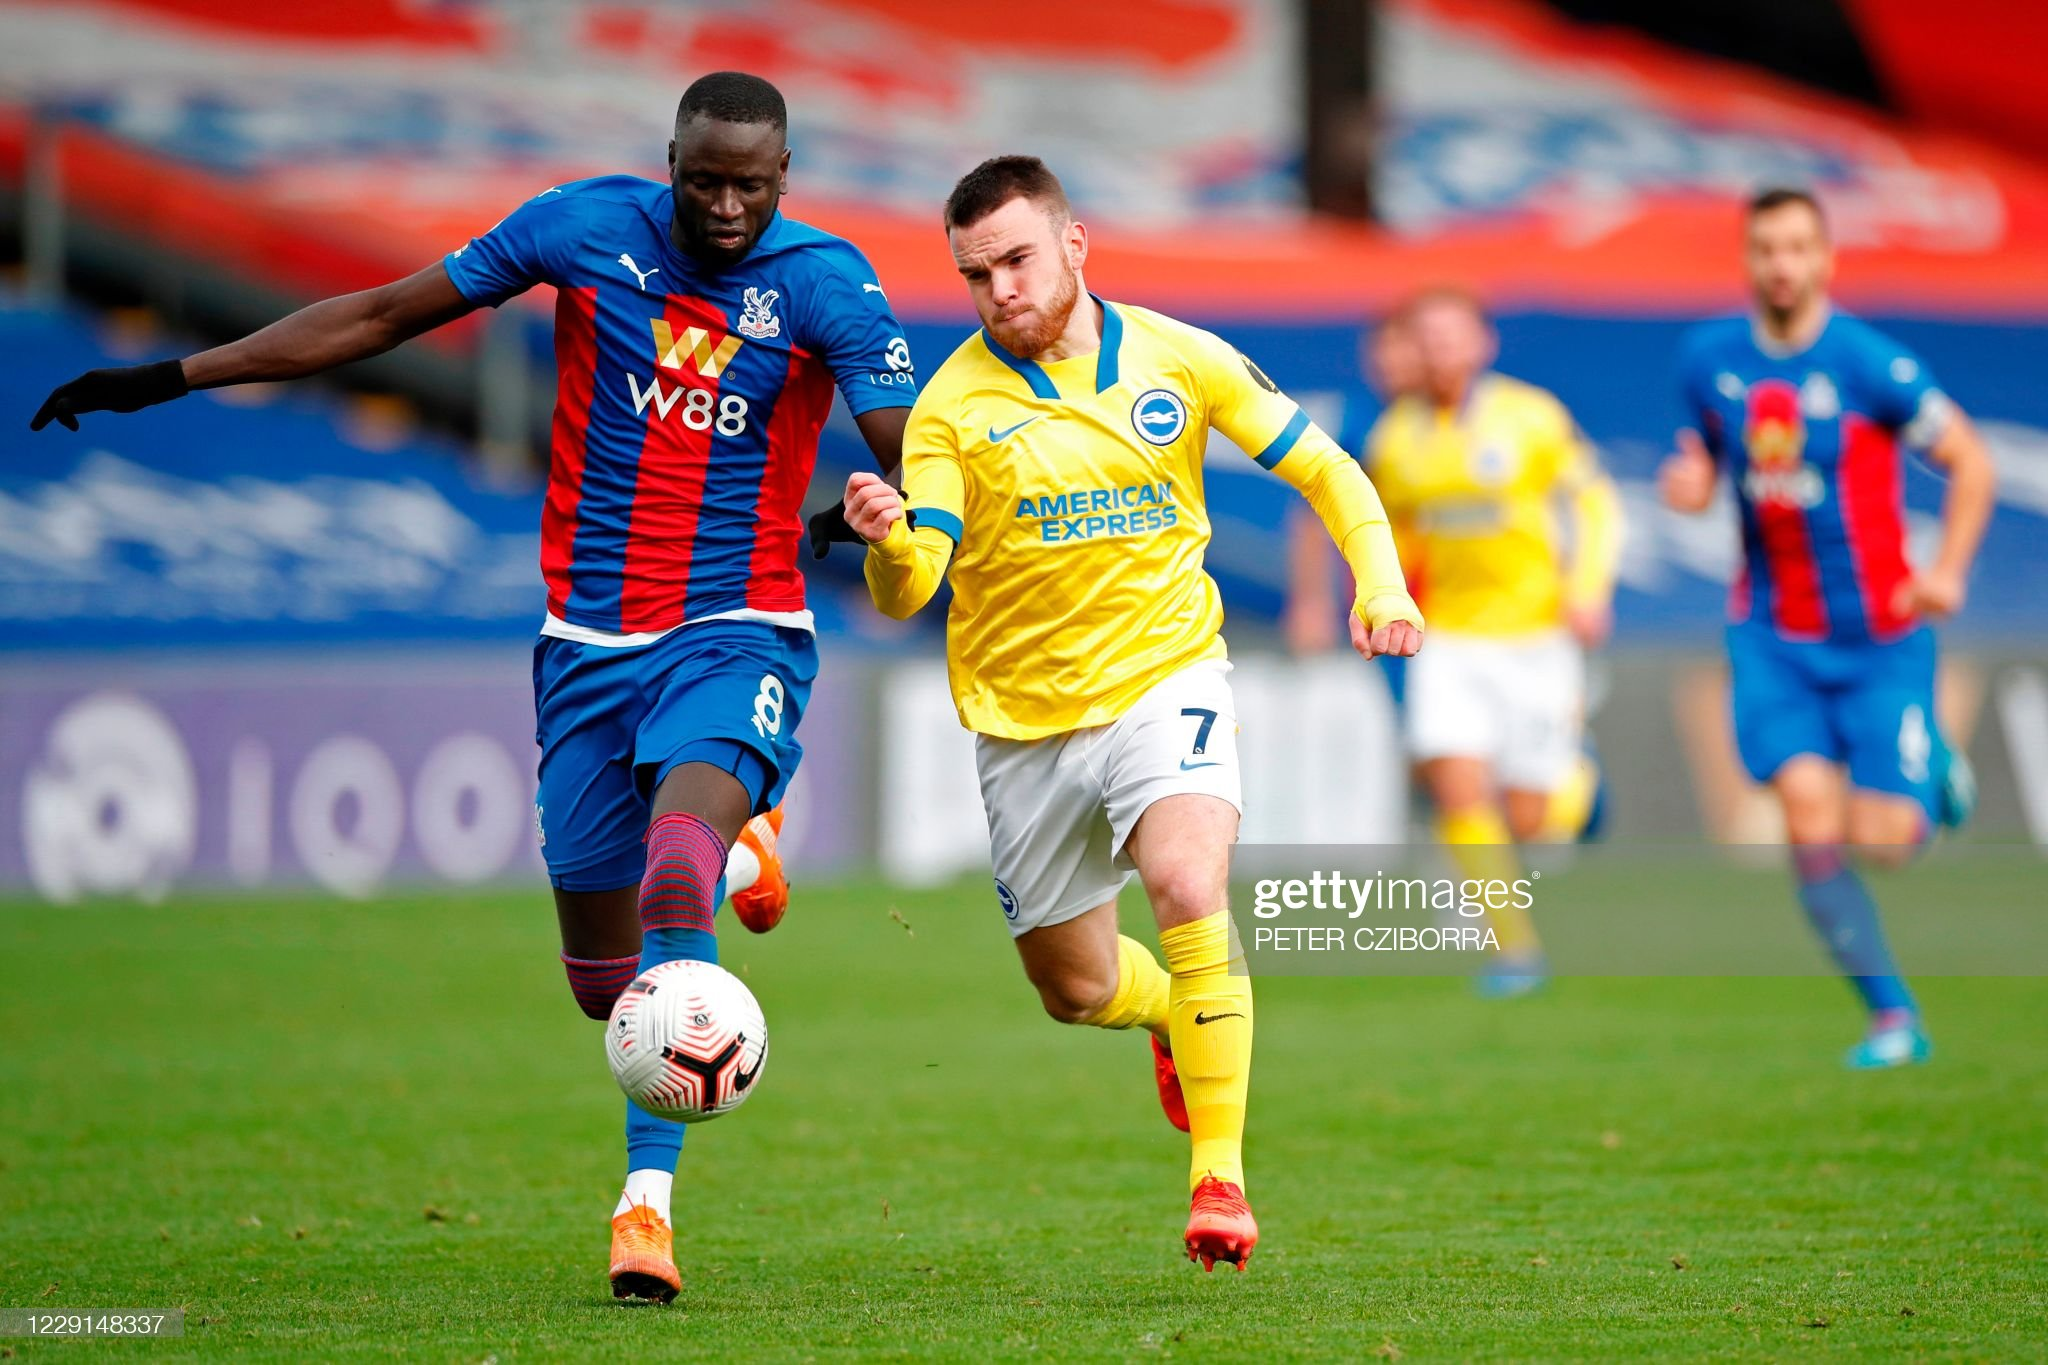 Brighton vs Crystal Palace preview, prediction and odds